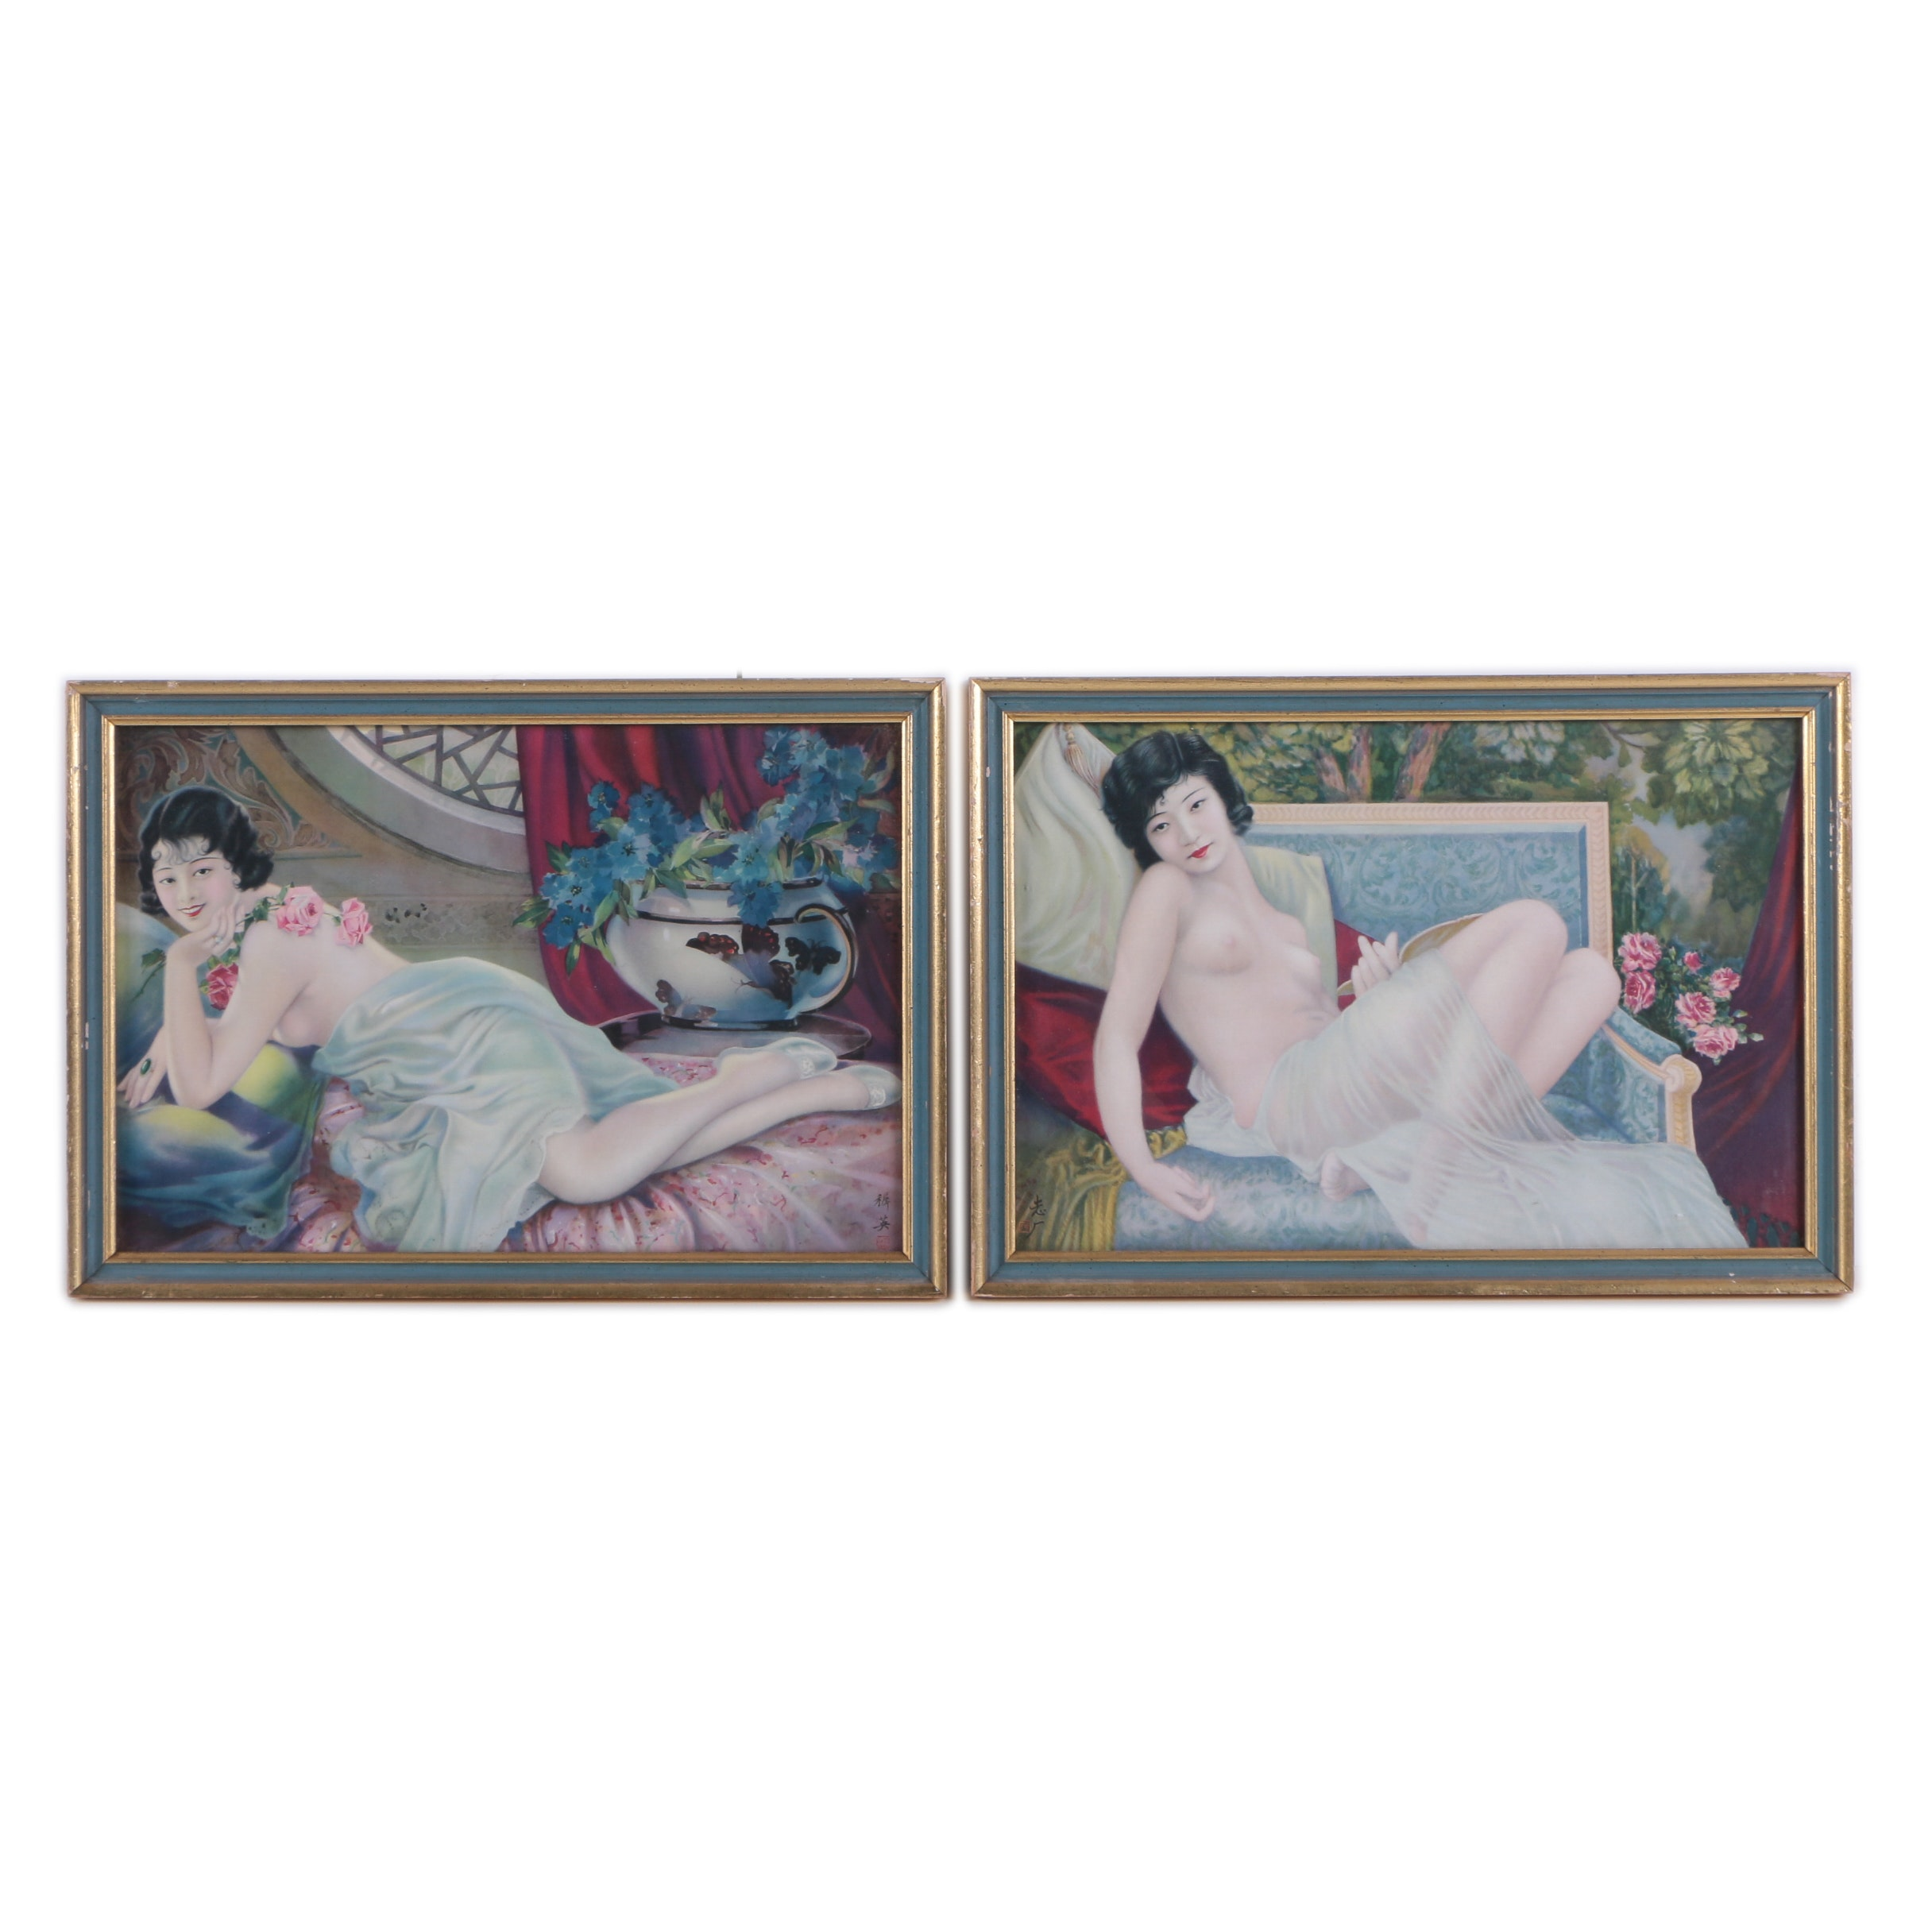 Two Offset Lithograph Prints of Reclining Nudes